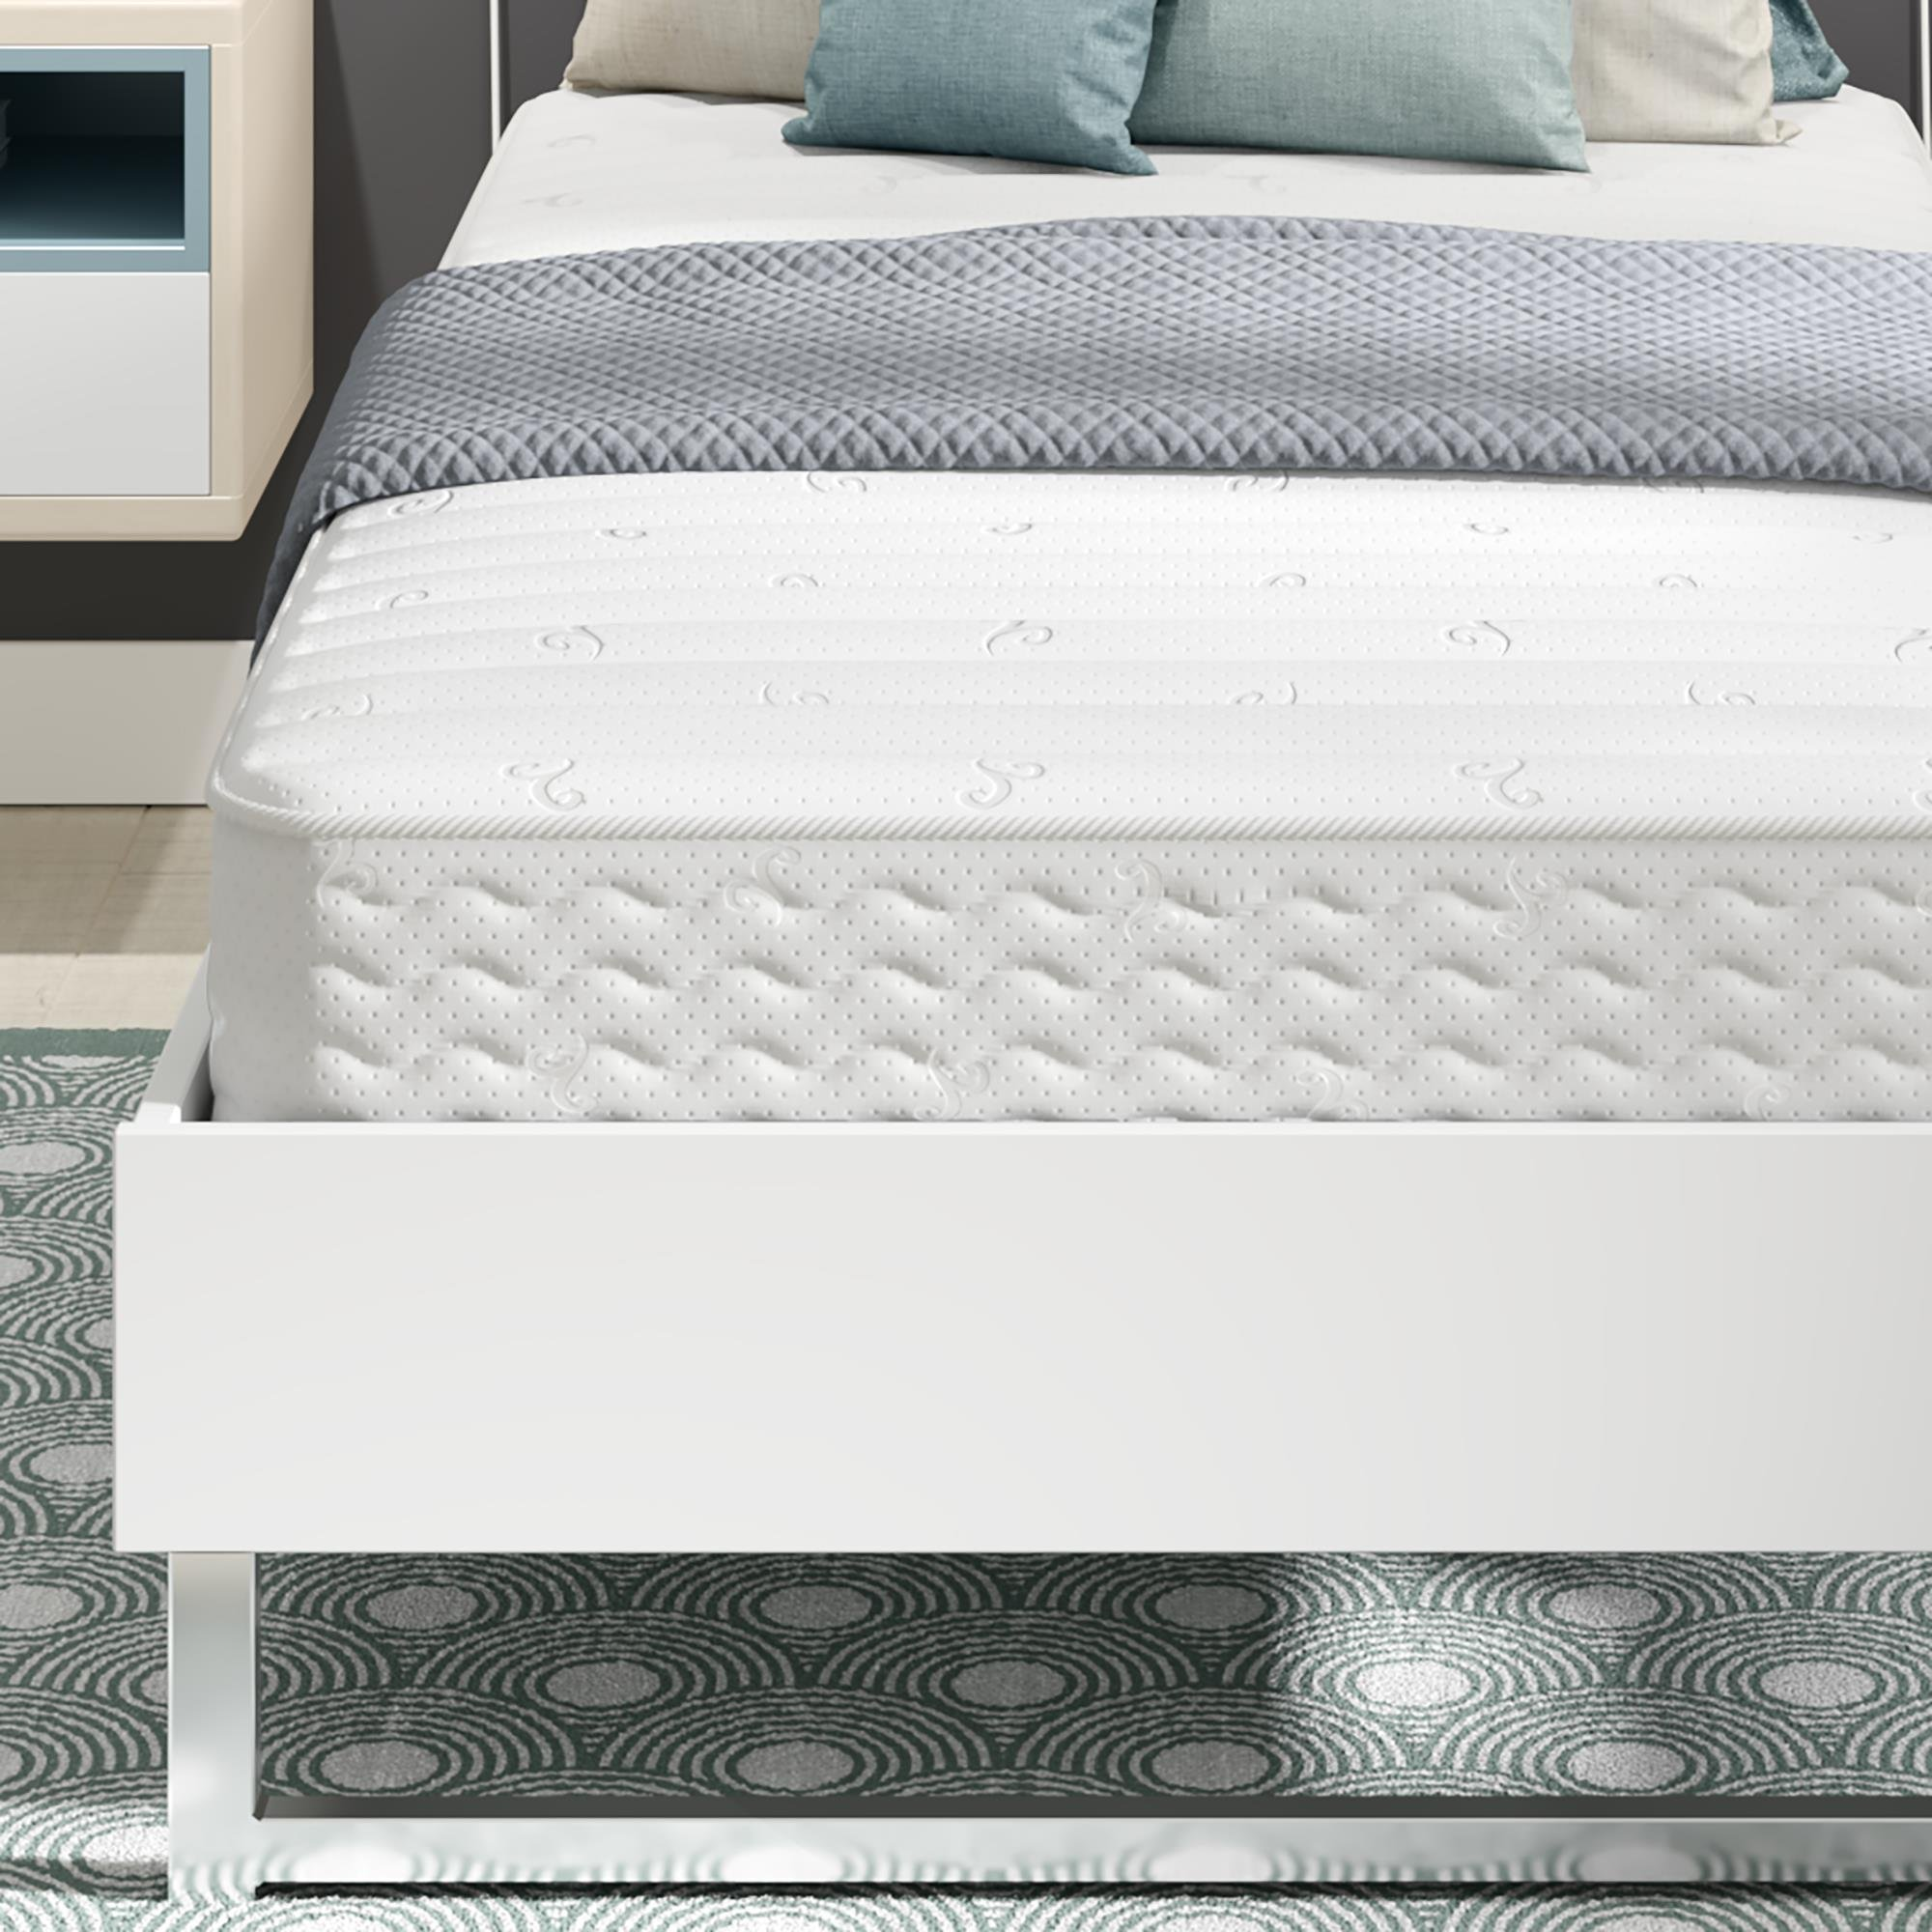 Signature Sleep Contour 8 Inch Independently Encased Coil Mattress with CertiPUR-US certified foam, Twin by Signature Sleep